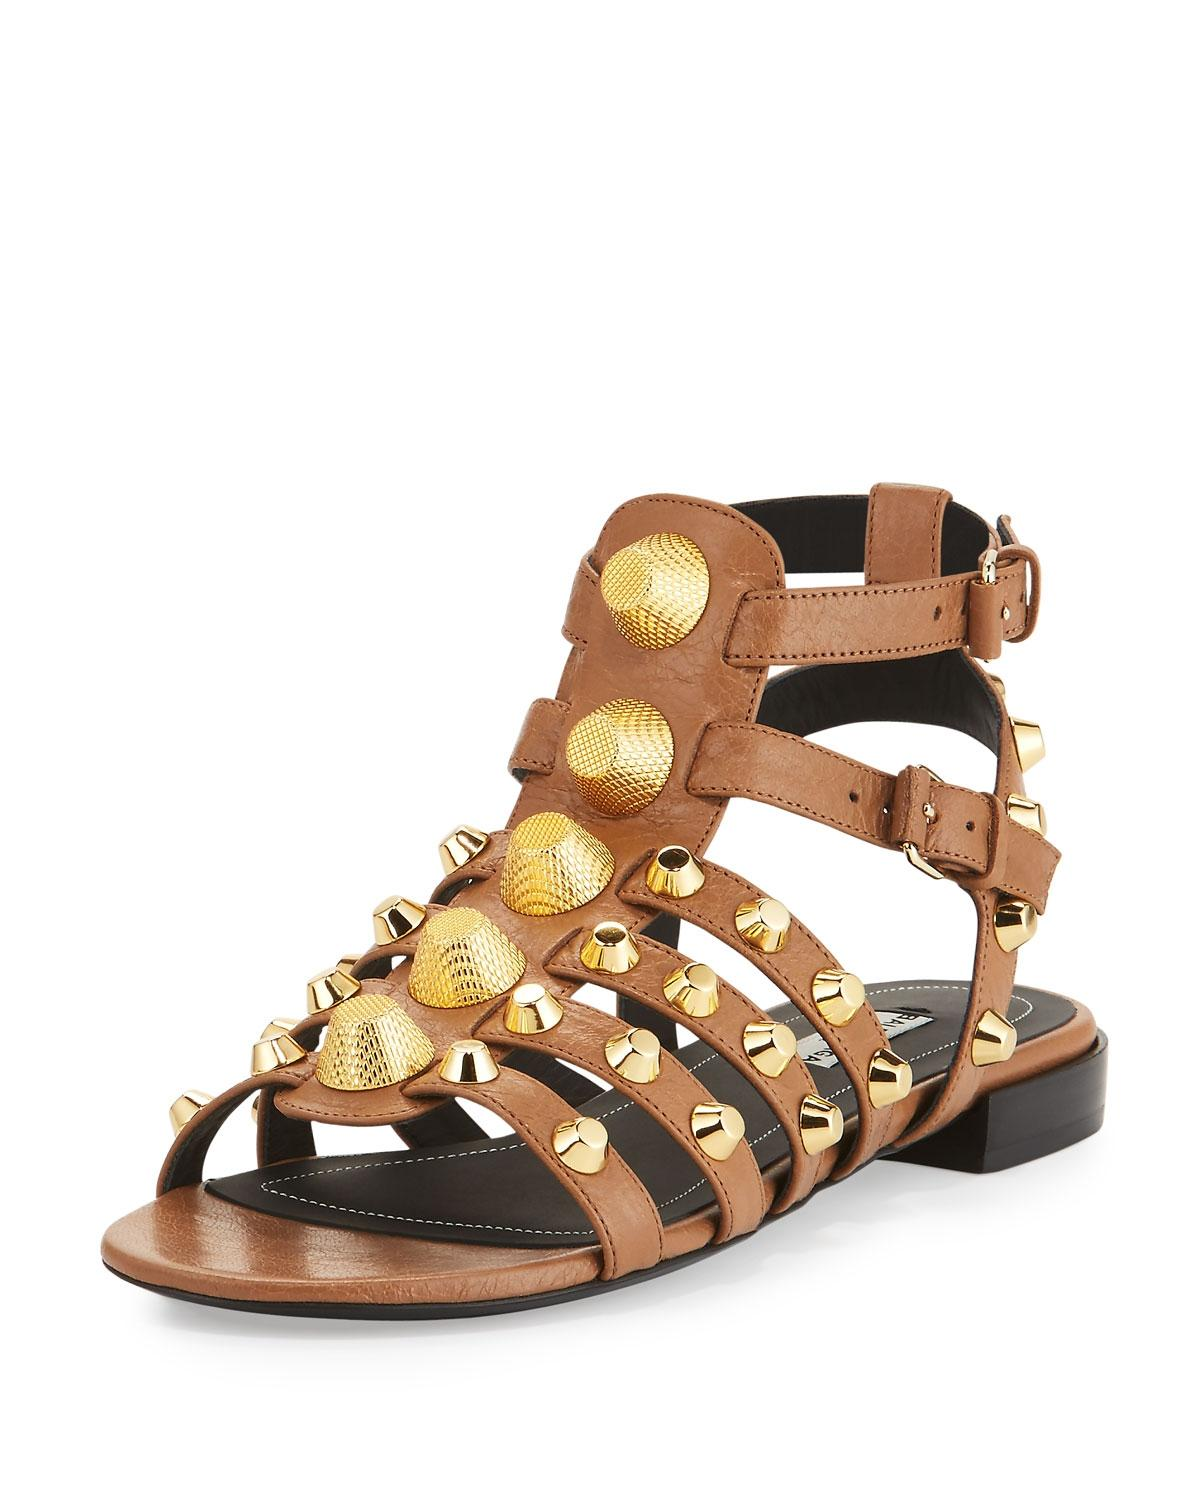 Balenciaga Arena Caged Sandals supply for sale free shipping best clearance cheapest price QX0i2pgK